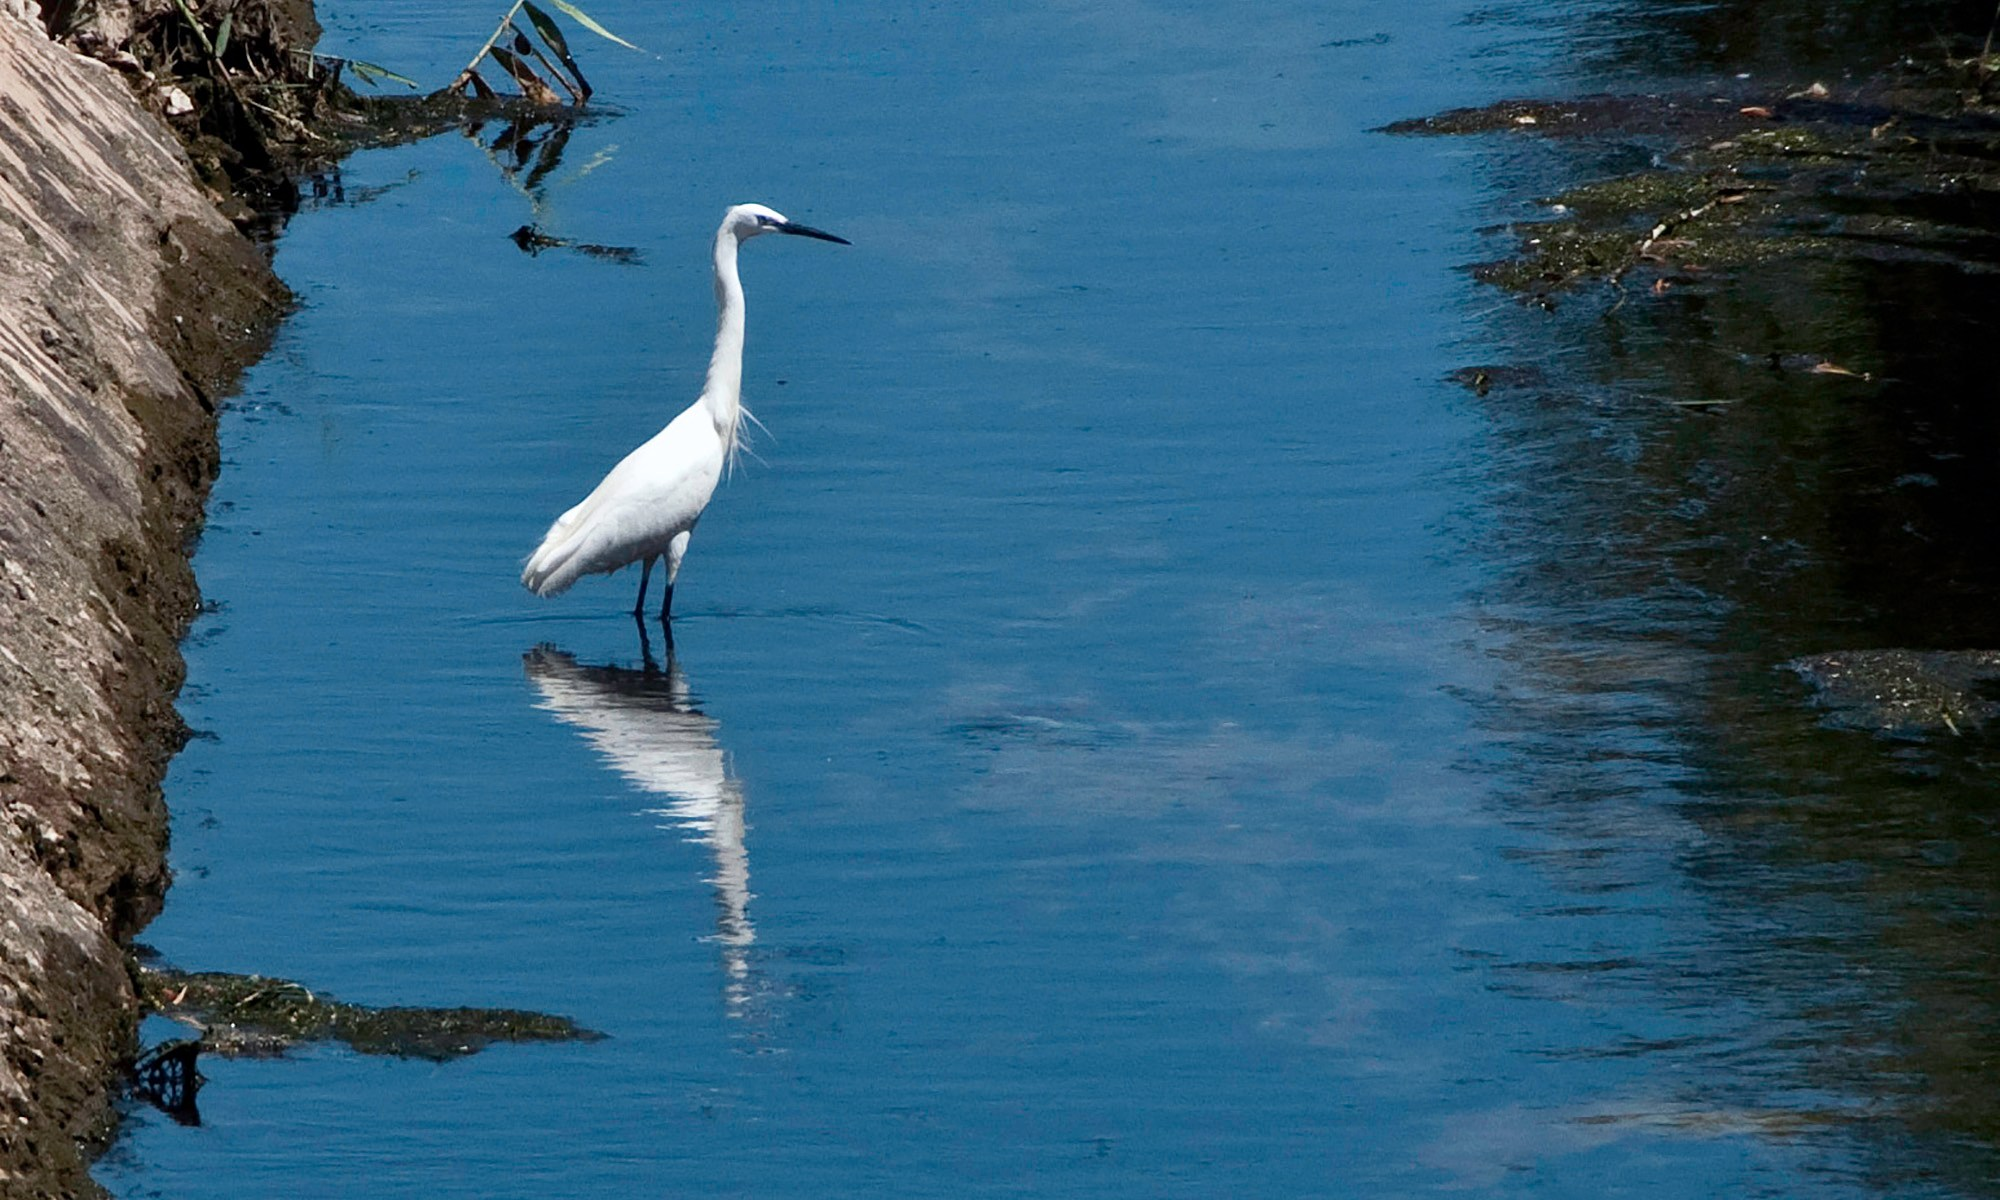 White Heron and Reflection